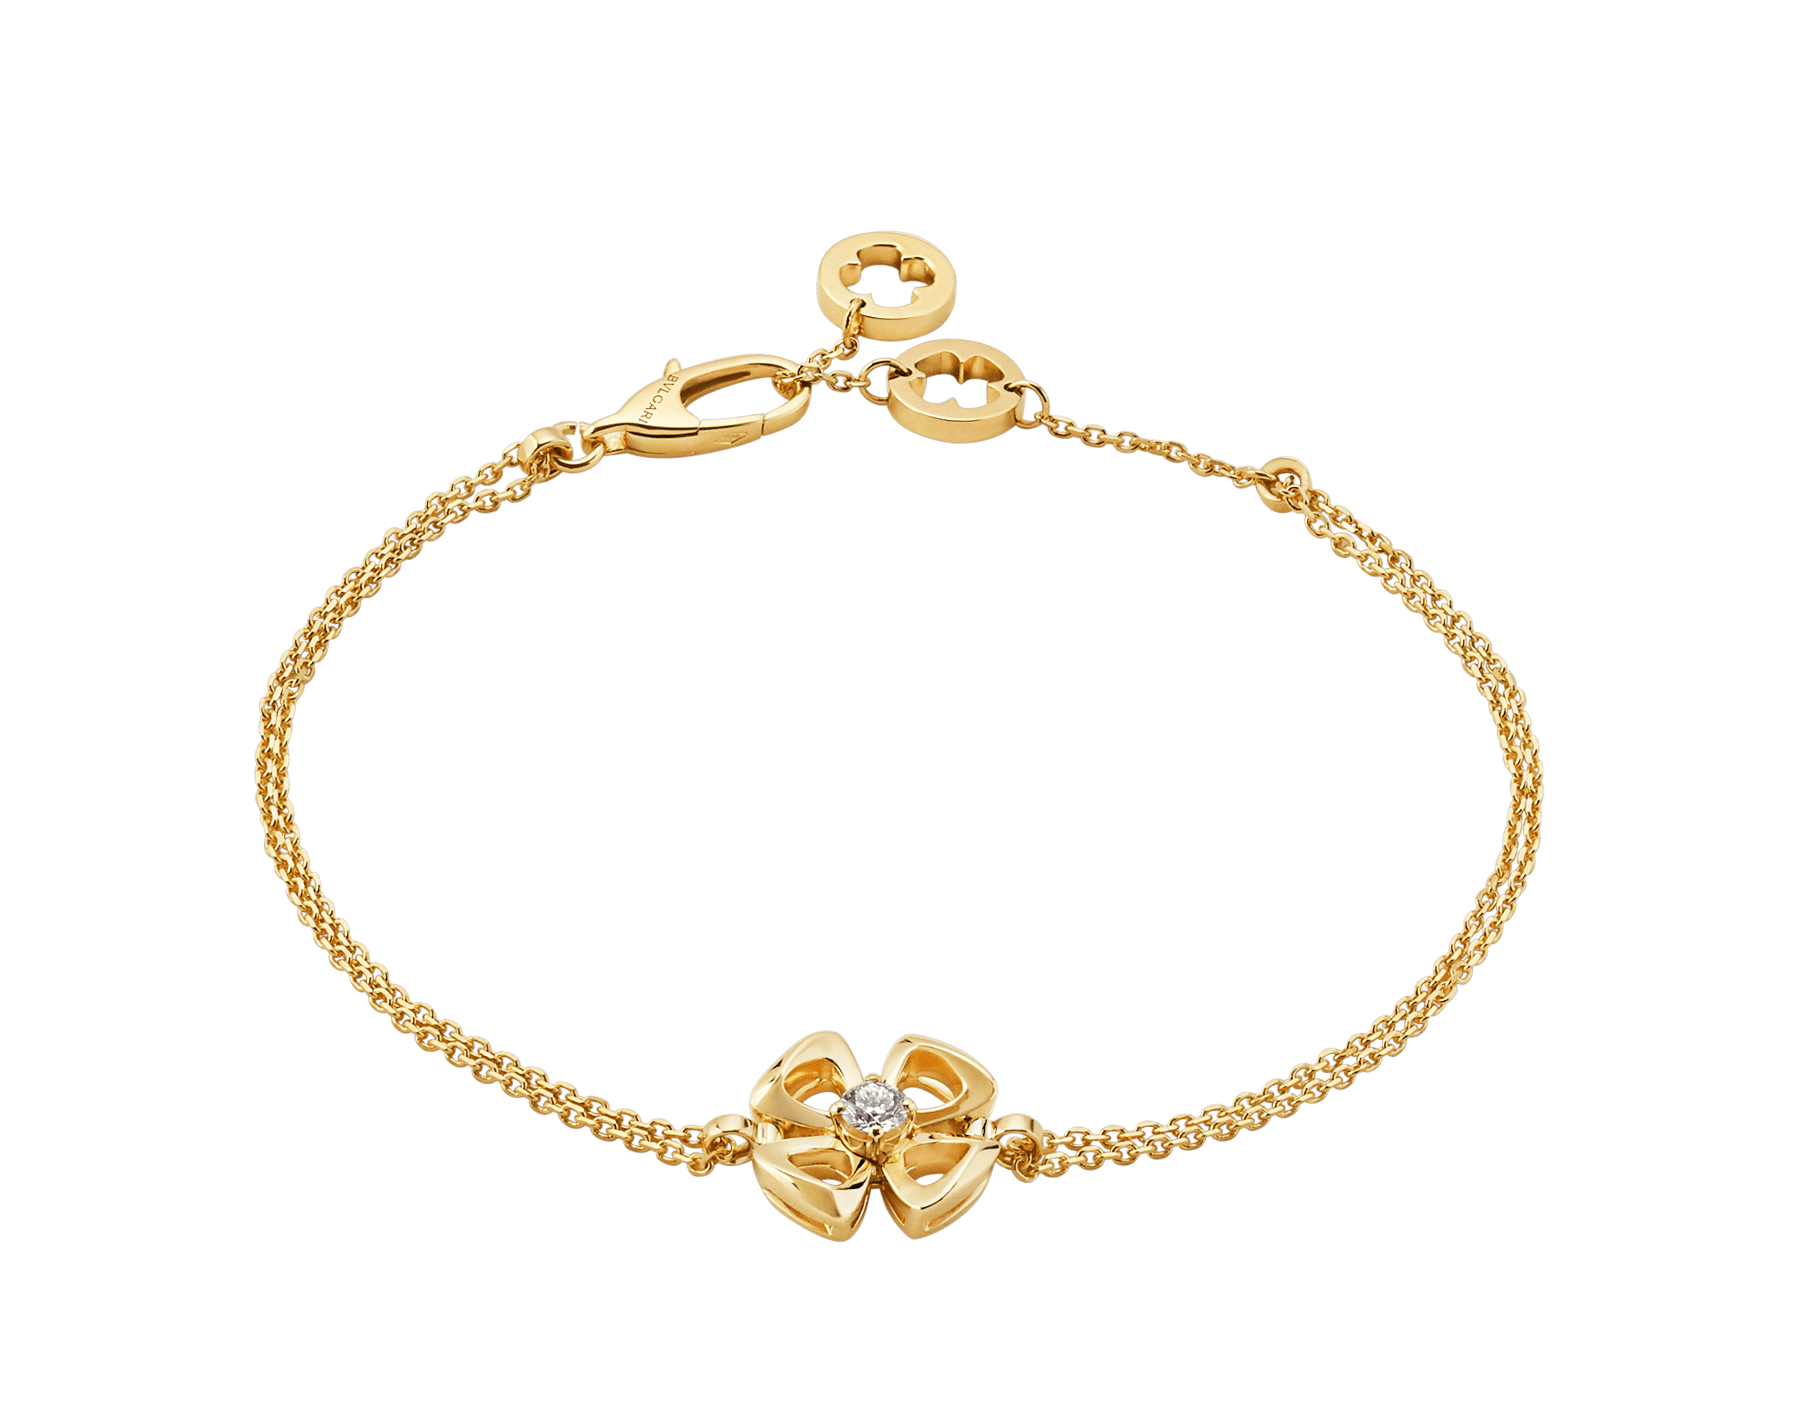 Fiorever 18 kt yellow gold bracelet set with a central diamond. BR858992 image 1